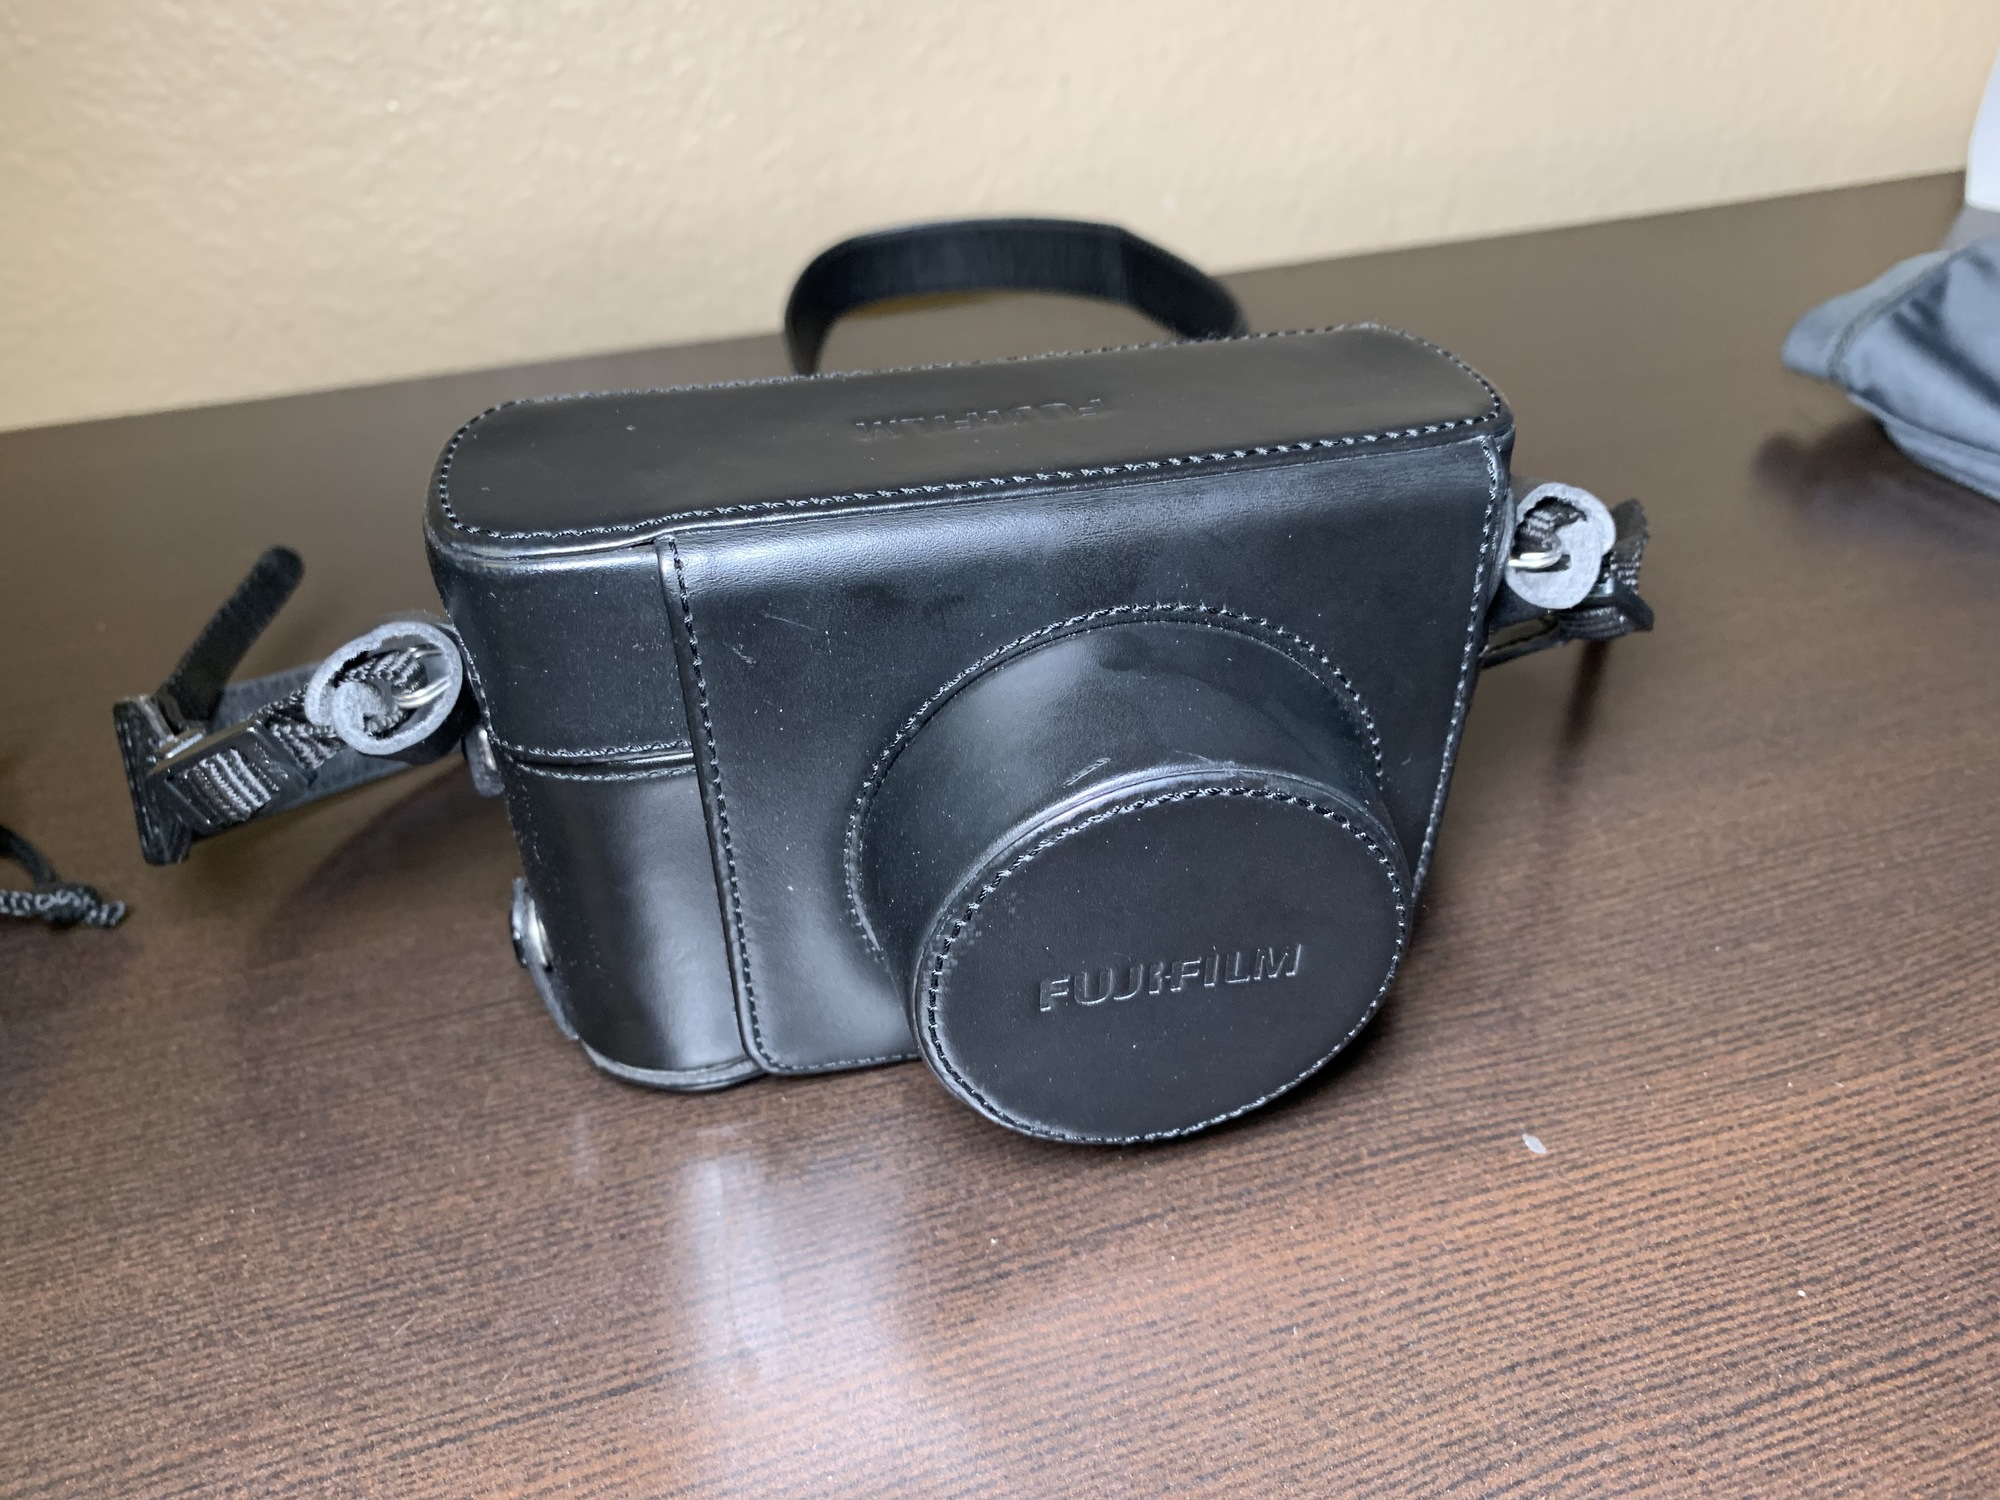 Sold: Fuji X100F with conversion lenses - FM Forums